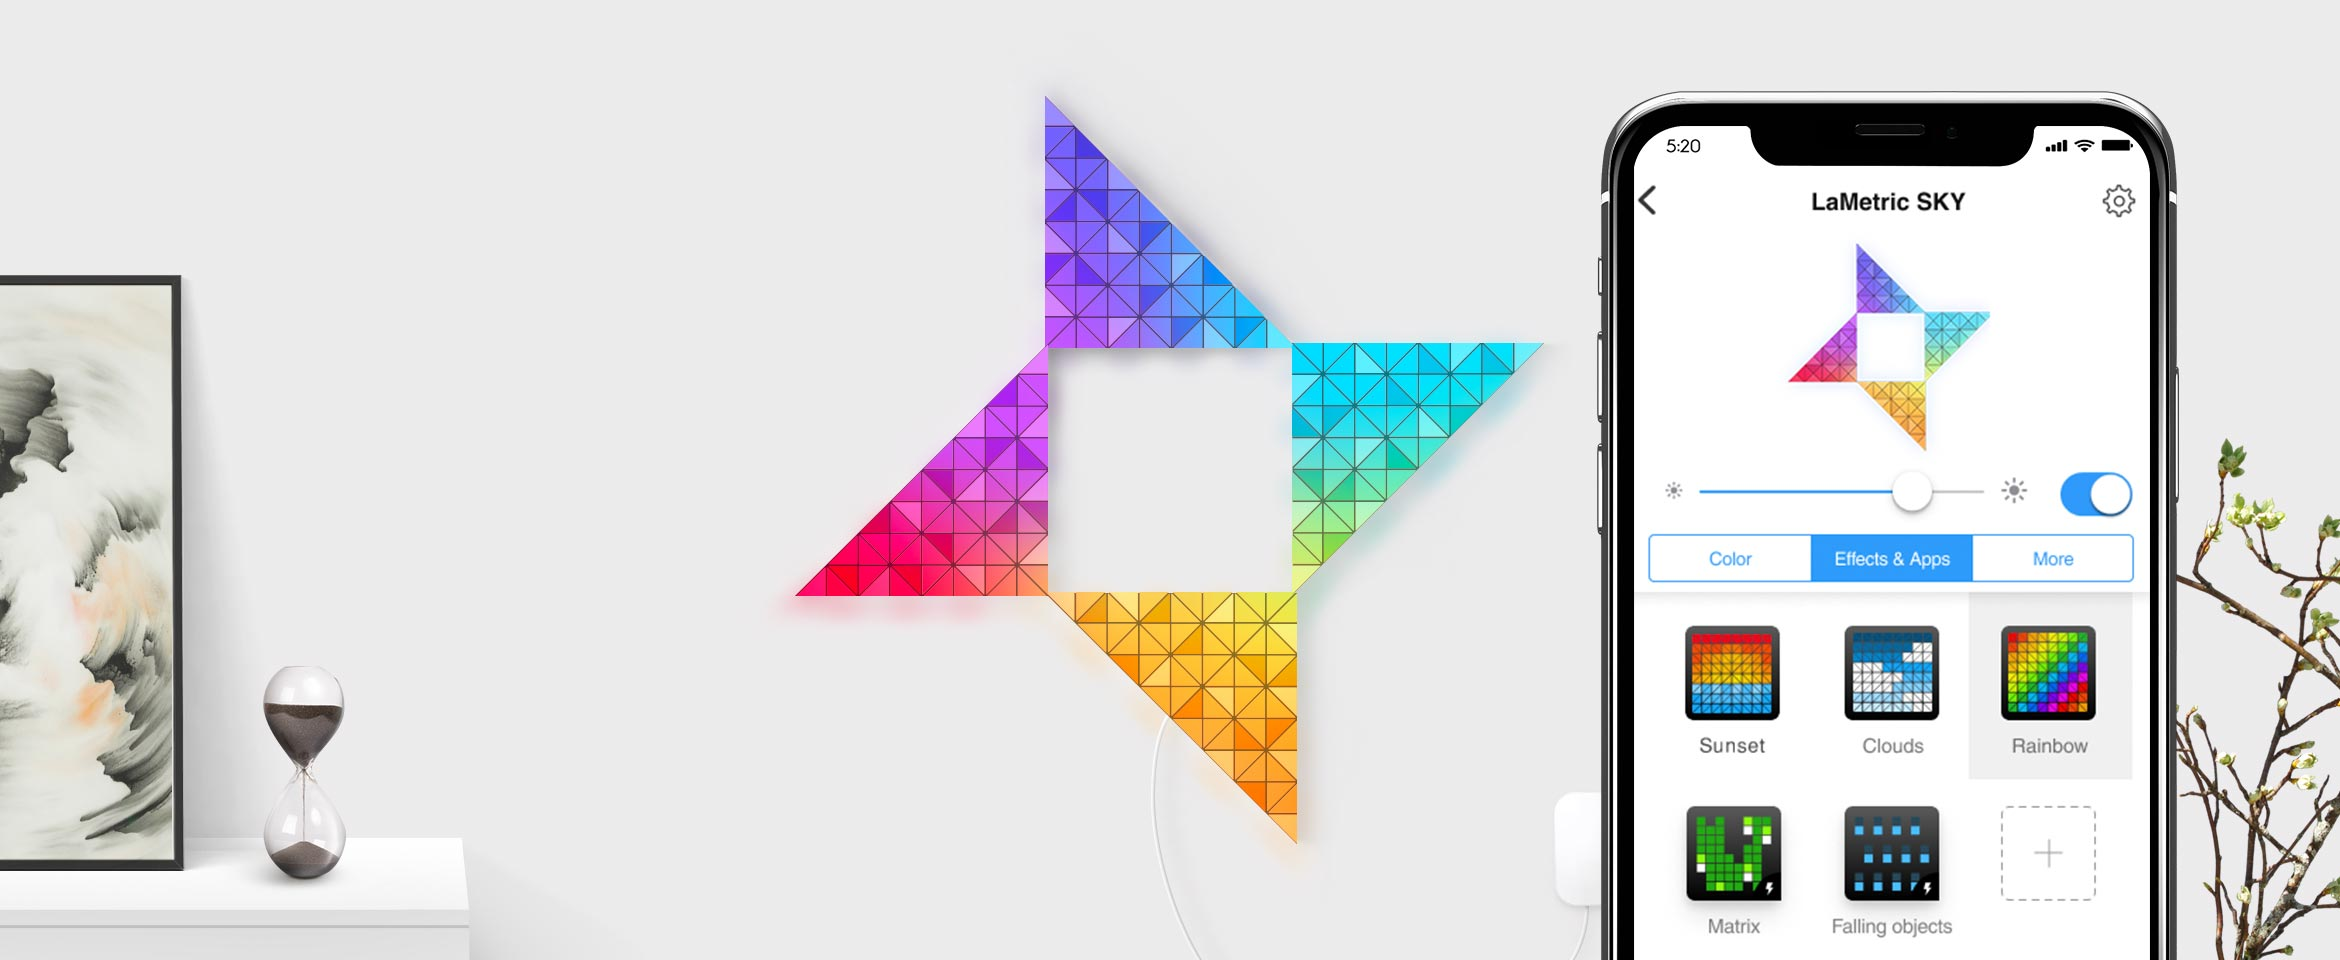 Butterfly shape, assembled from 4 smart light surfaces, expresses rainbow and iPhone shows different light effects in SKY app